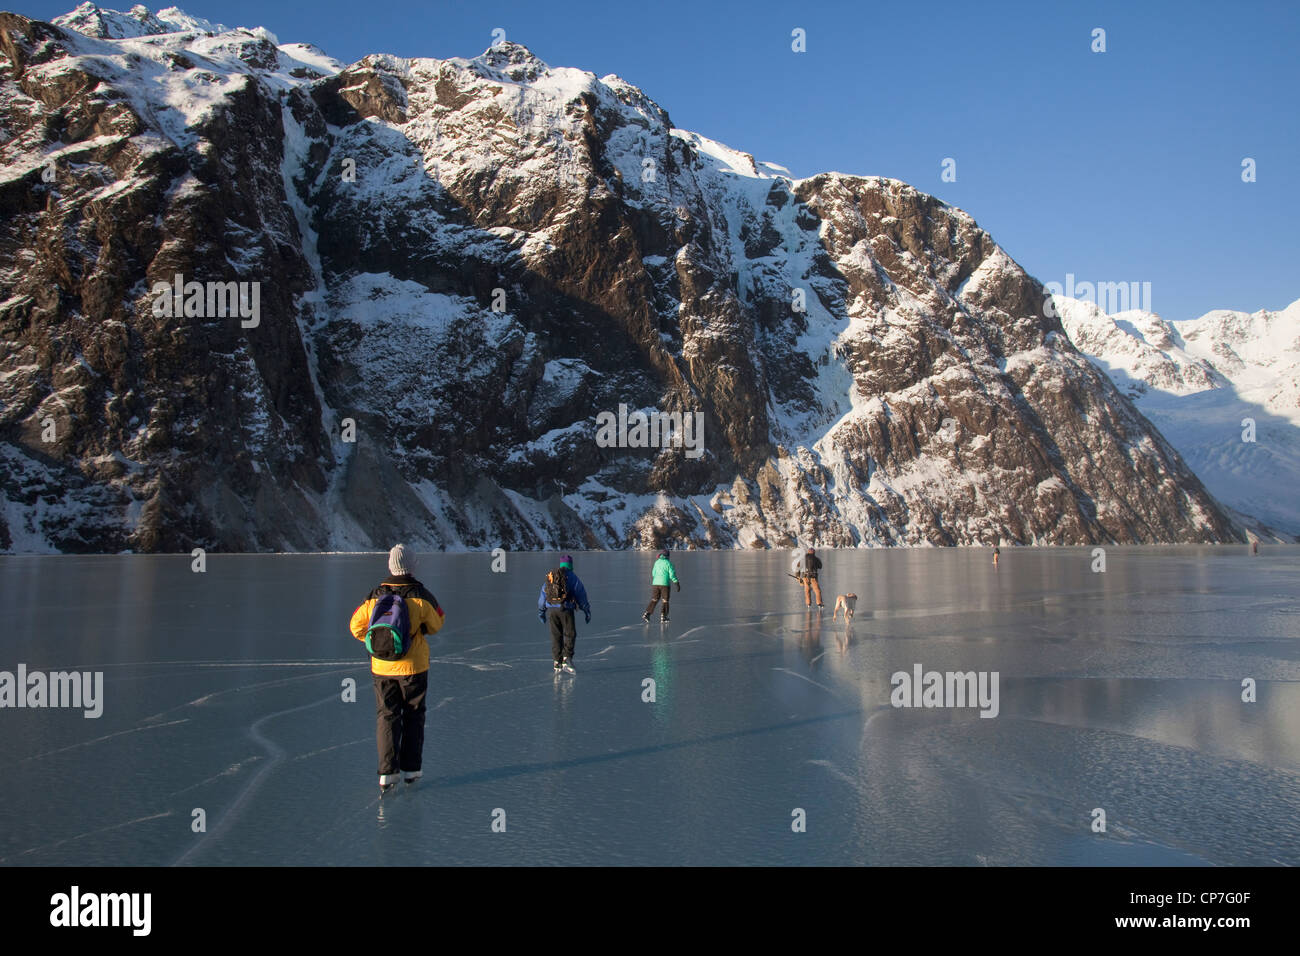 Group of ice skaters on Saddlebag Lake, Chugach Mountains near Cordova, Southcentral Alaska, Winter - Stock Image